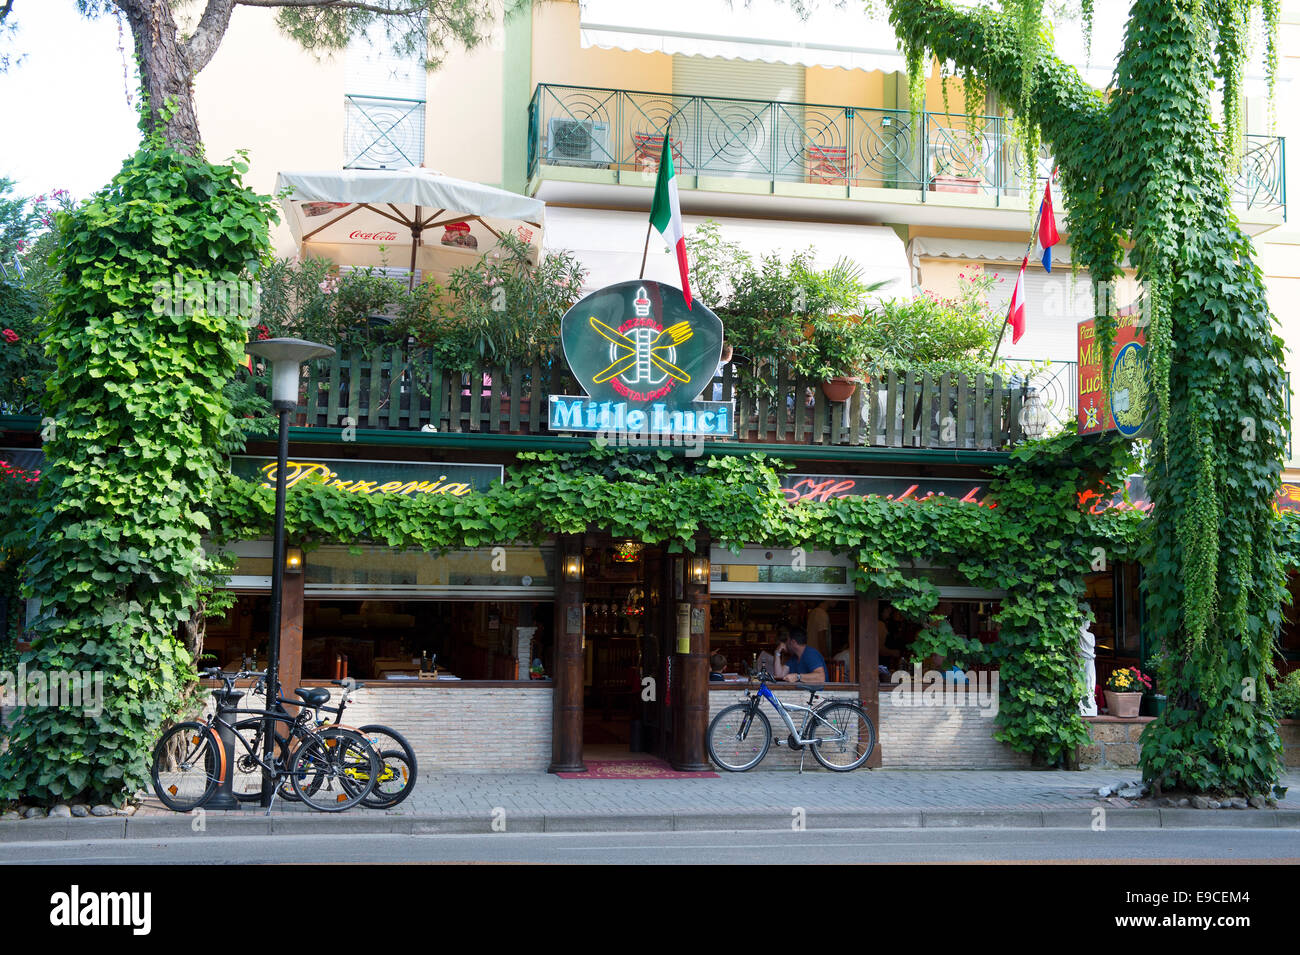 Restaurant, Pizzaria, Trattoria, Bar, Cafe, Mille Luci, Street, Nature, Outdoor, Outside, Sky, Open, Air, Adria, Stock Photo